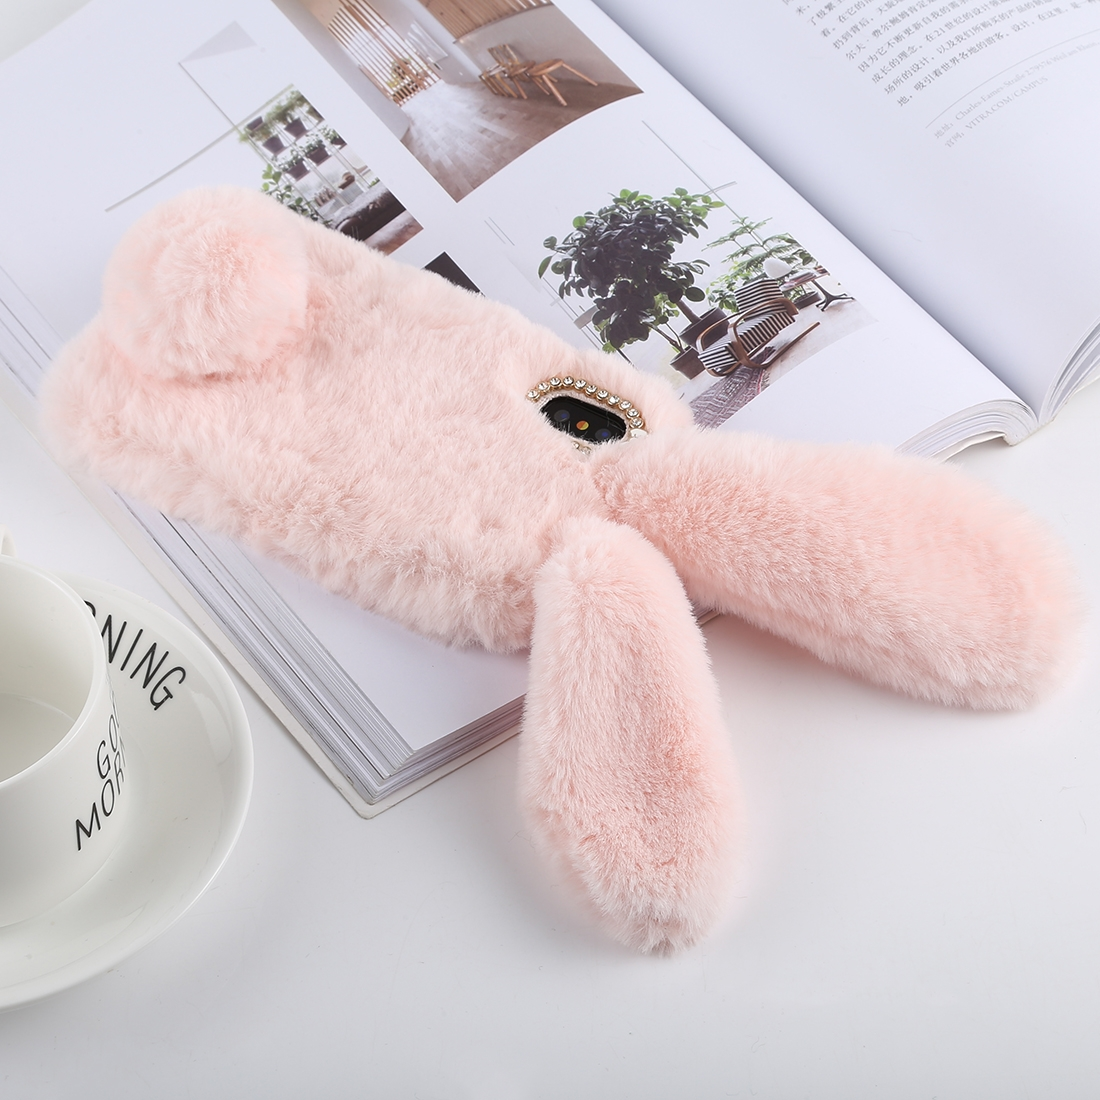 Cute Rabbit Ears Style Plush Case for iPhone XS Max (Pink)